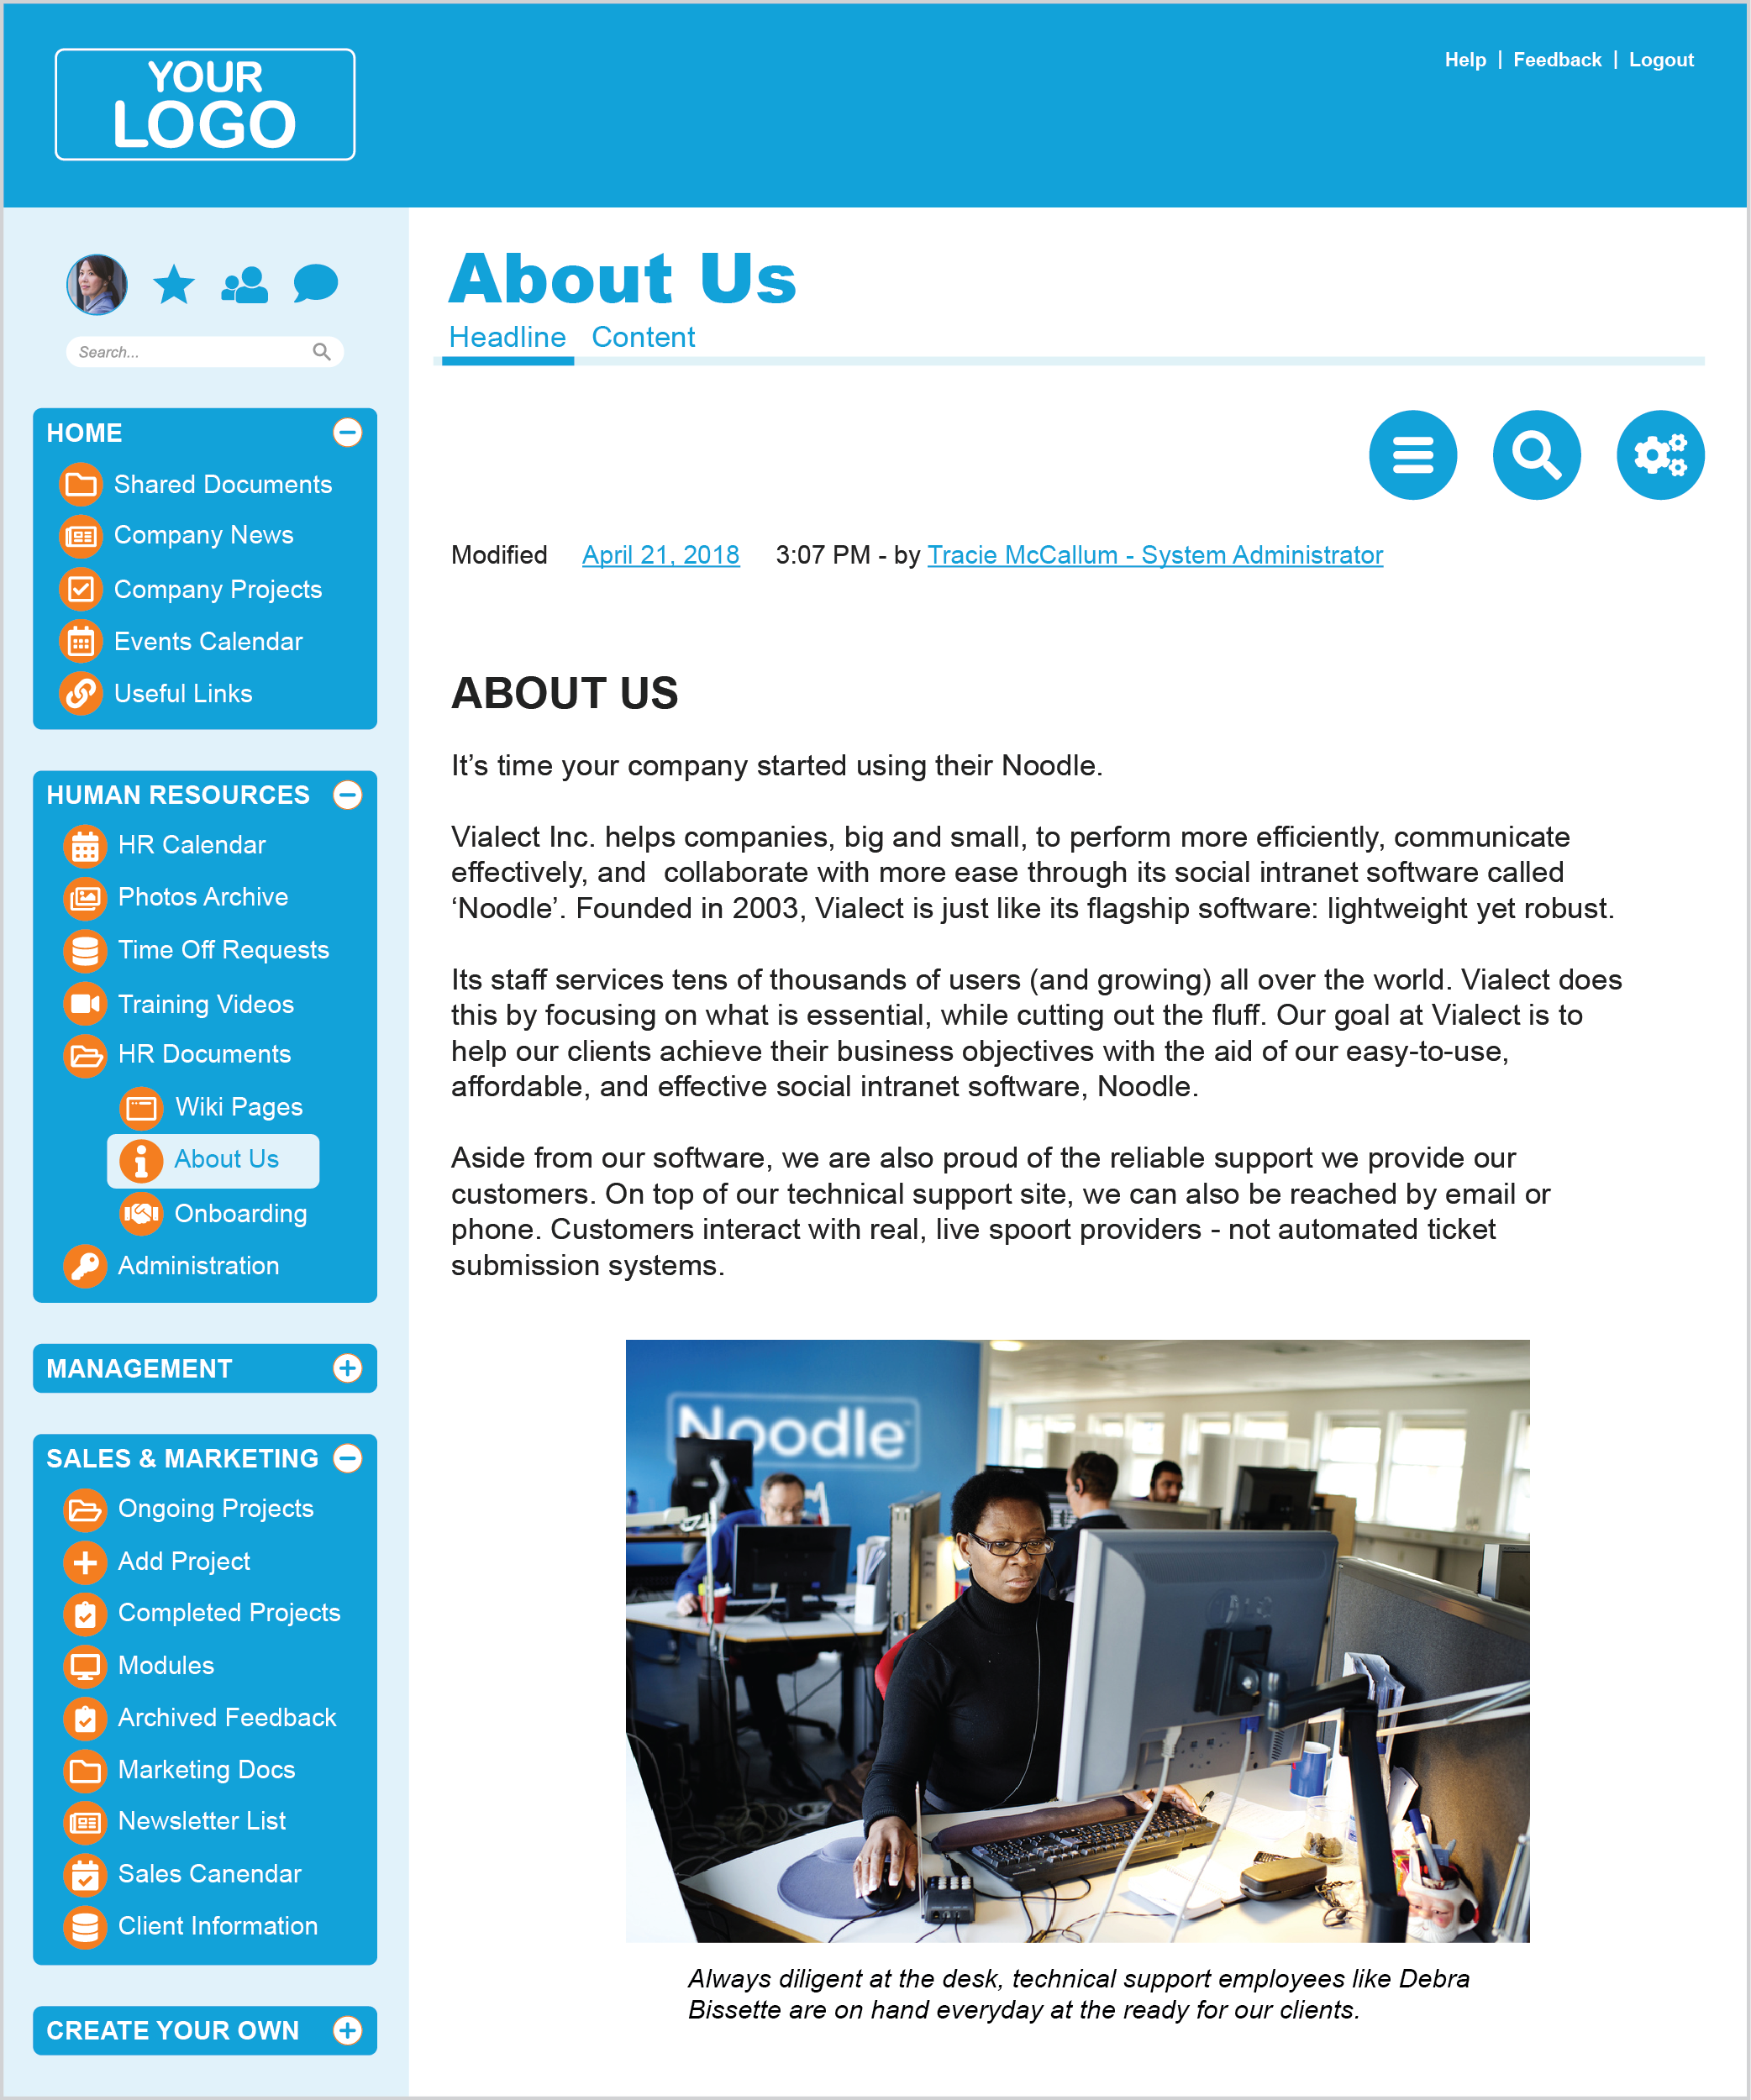 Intranet Pages